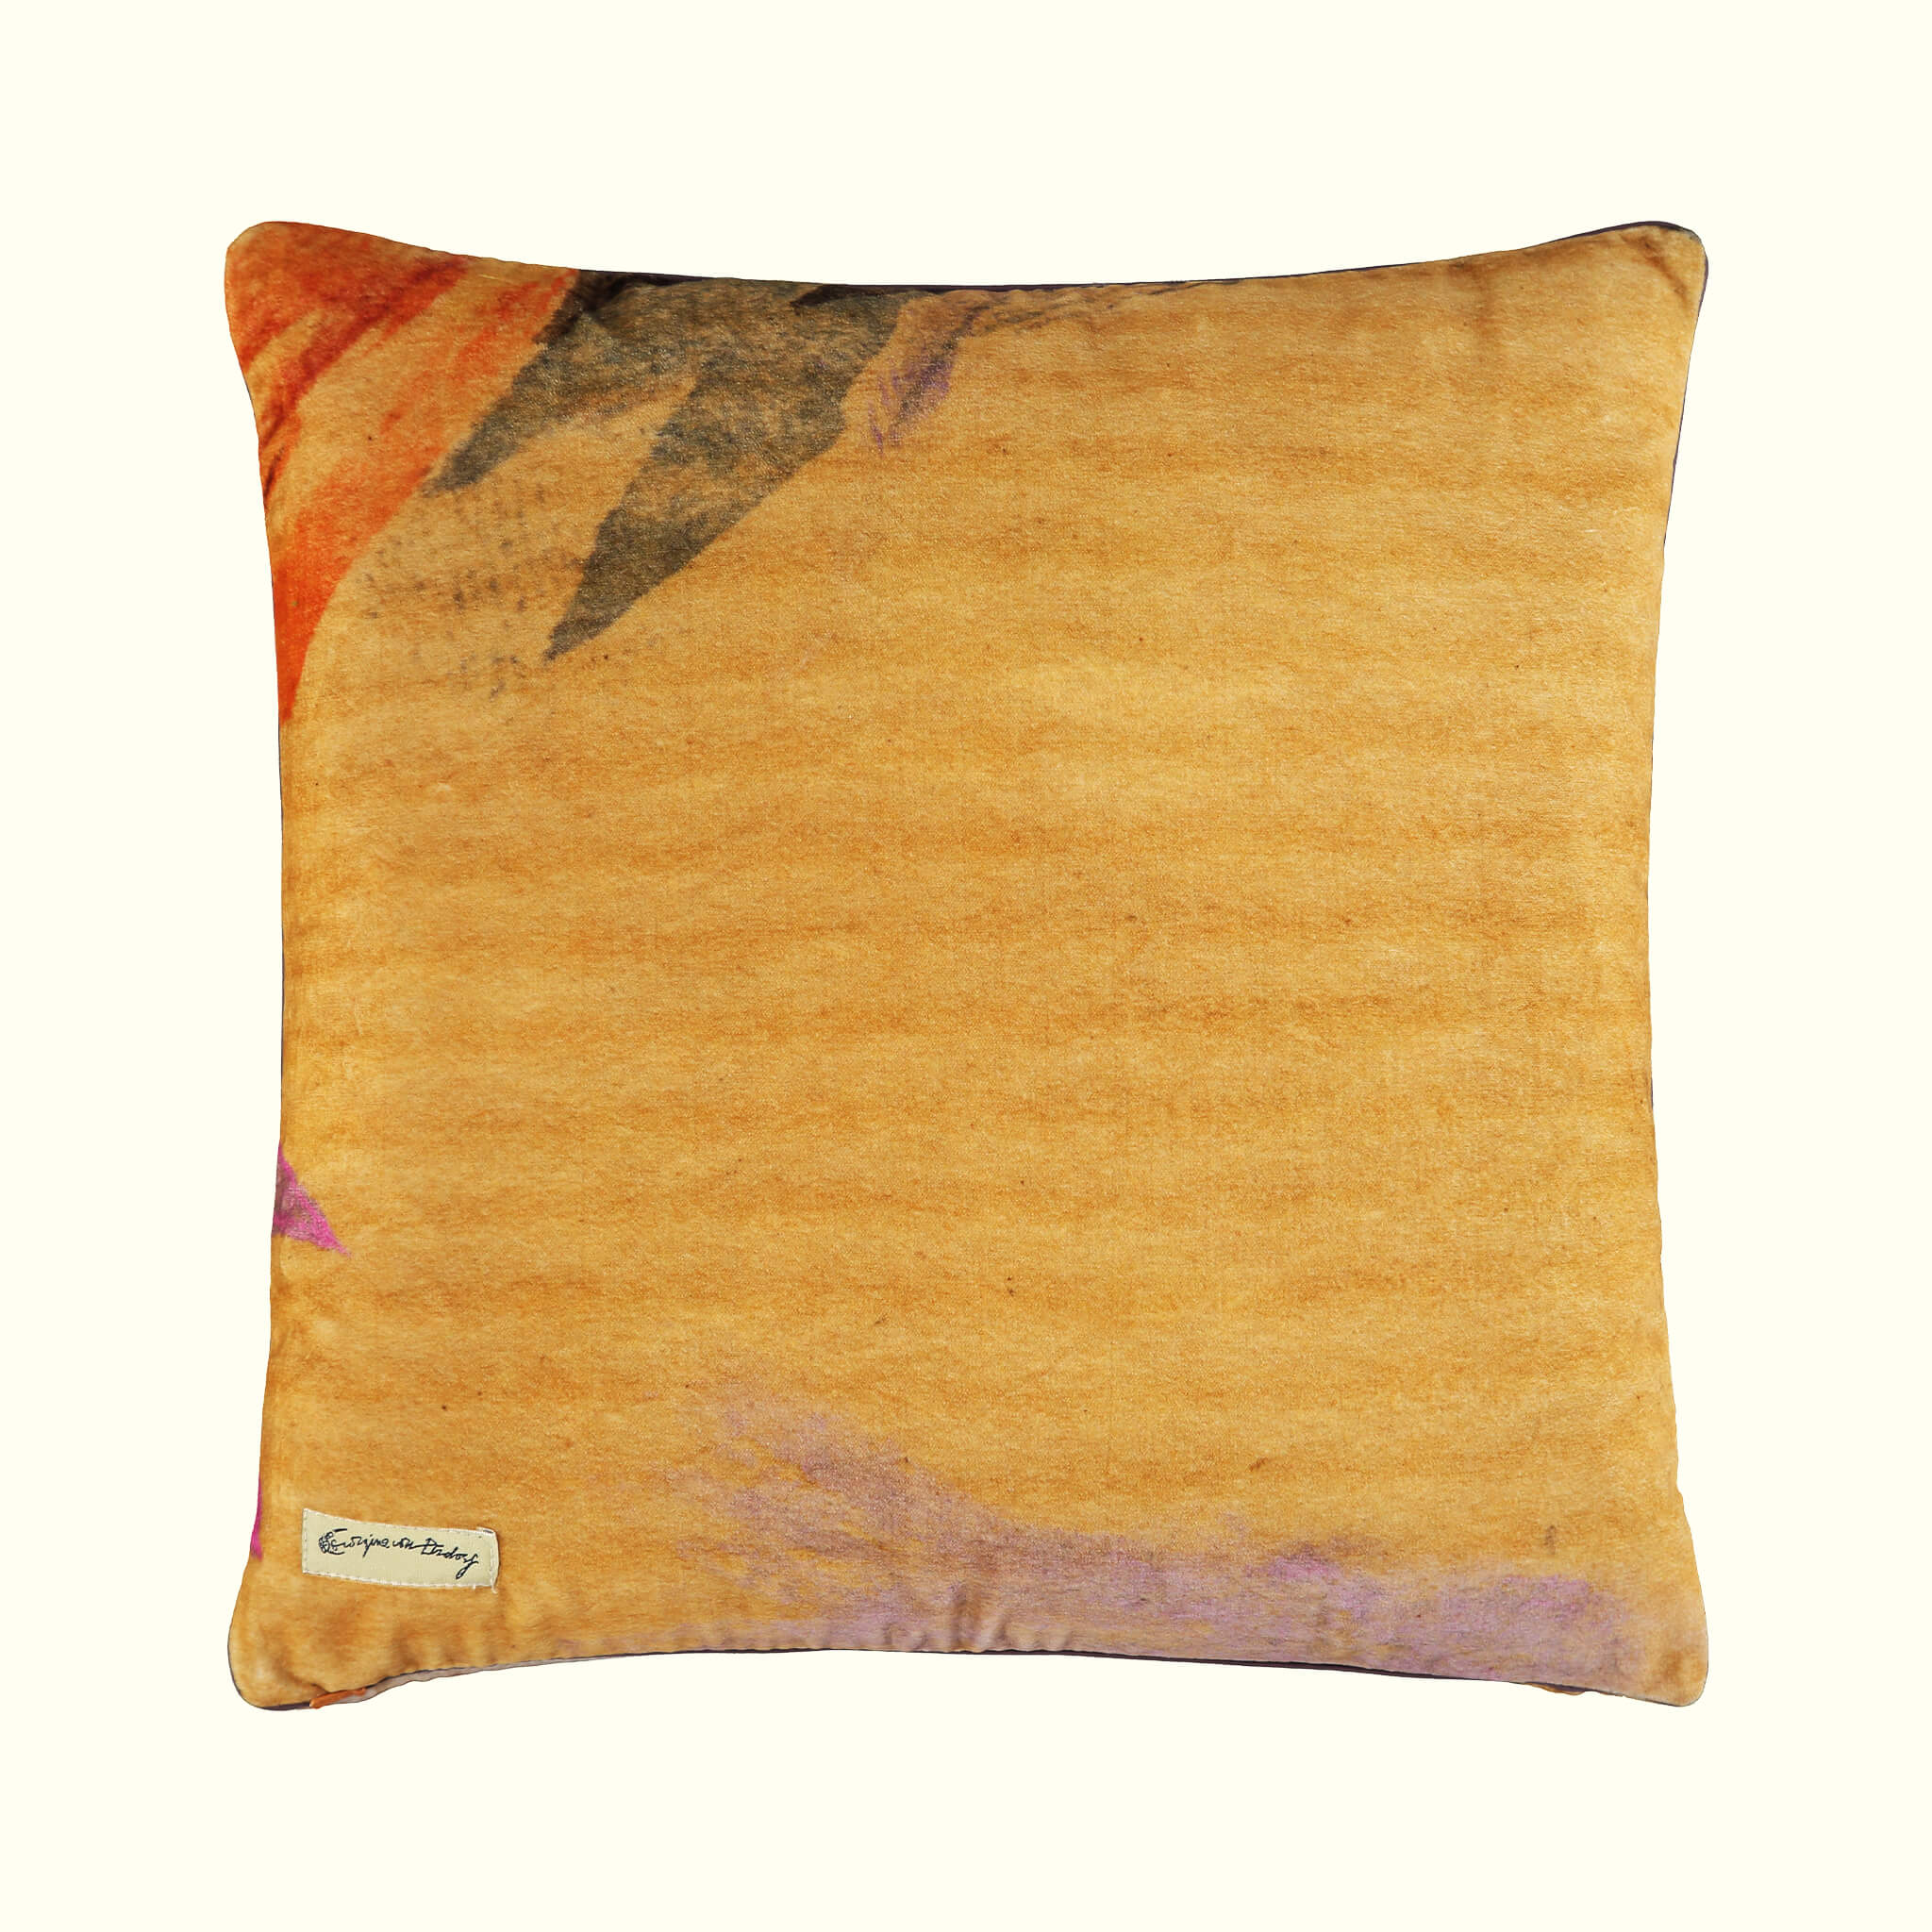 A luxury British cotton velvet cushion by GVE in gold Conversation print design.